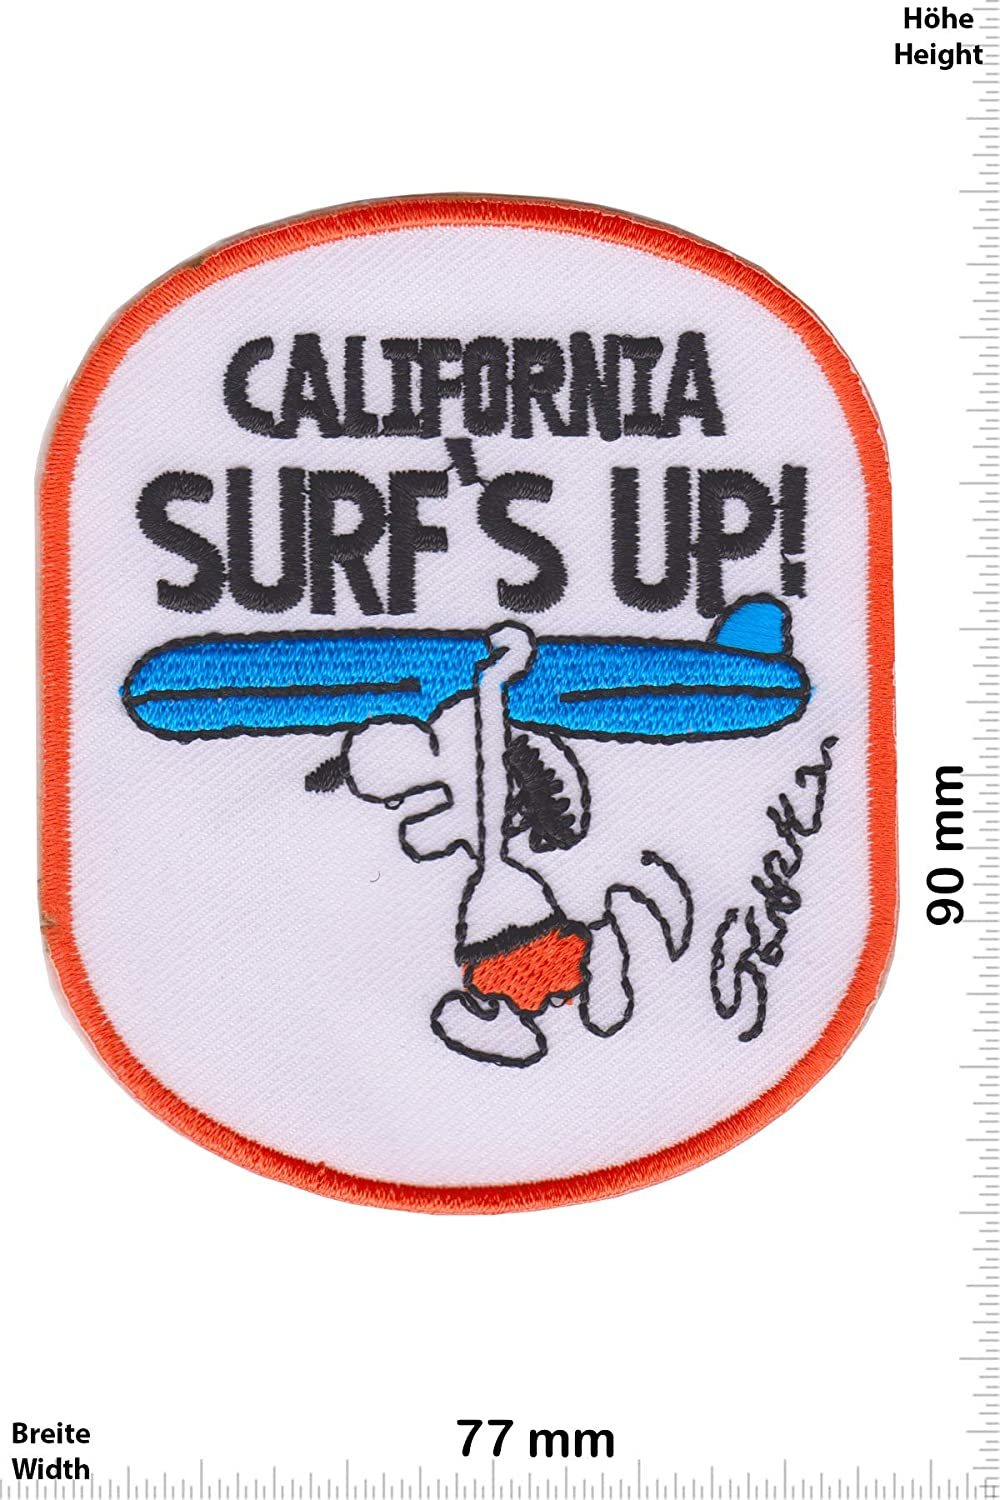 Snoppy -Cartoon -Snoppy -Snoppy Iron on Applique Embroidery /Écusson brod/é Costume Cadeau- Give California Surfs Up Patch